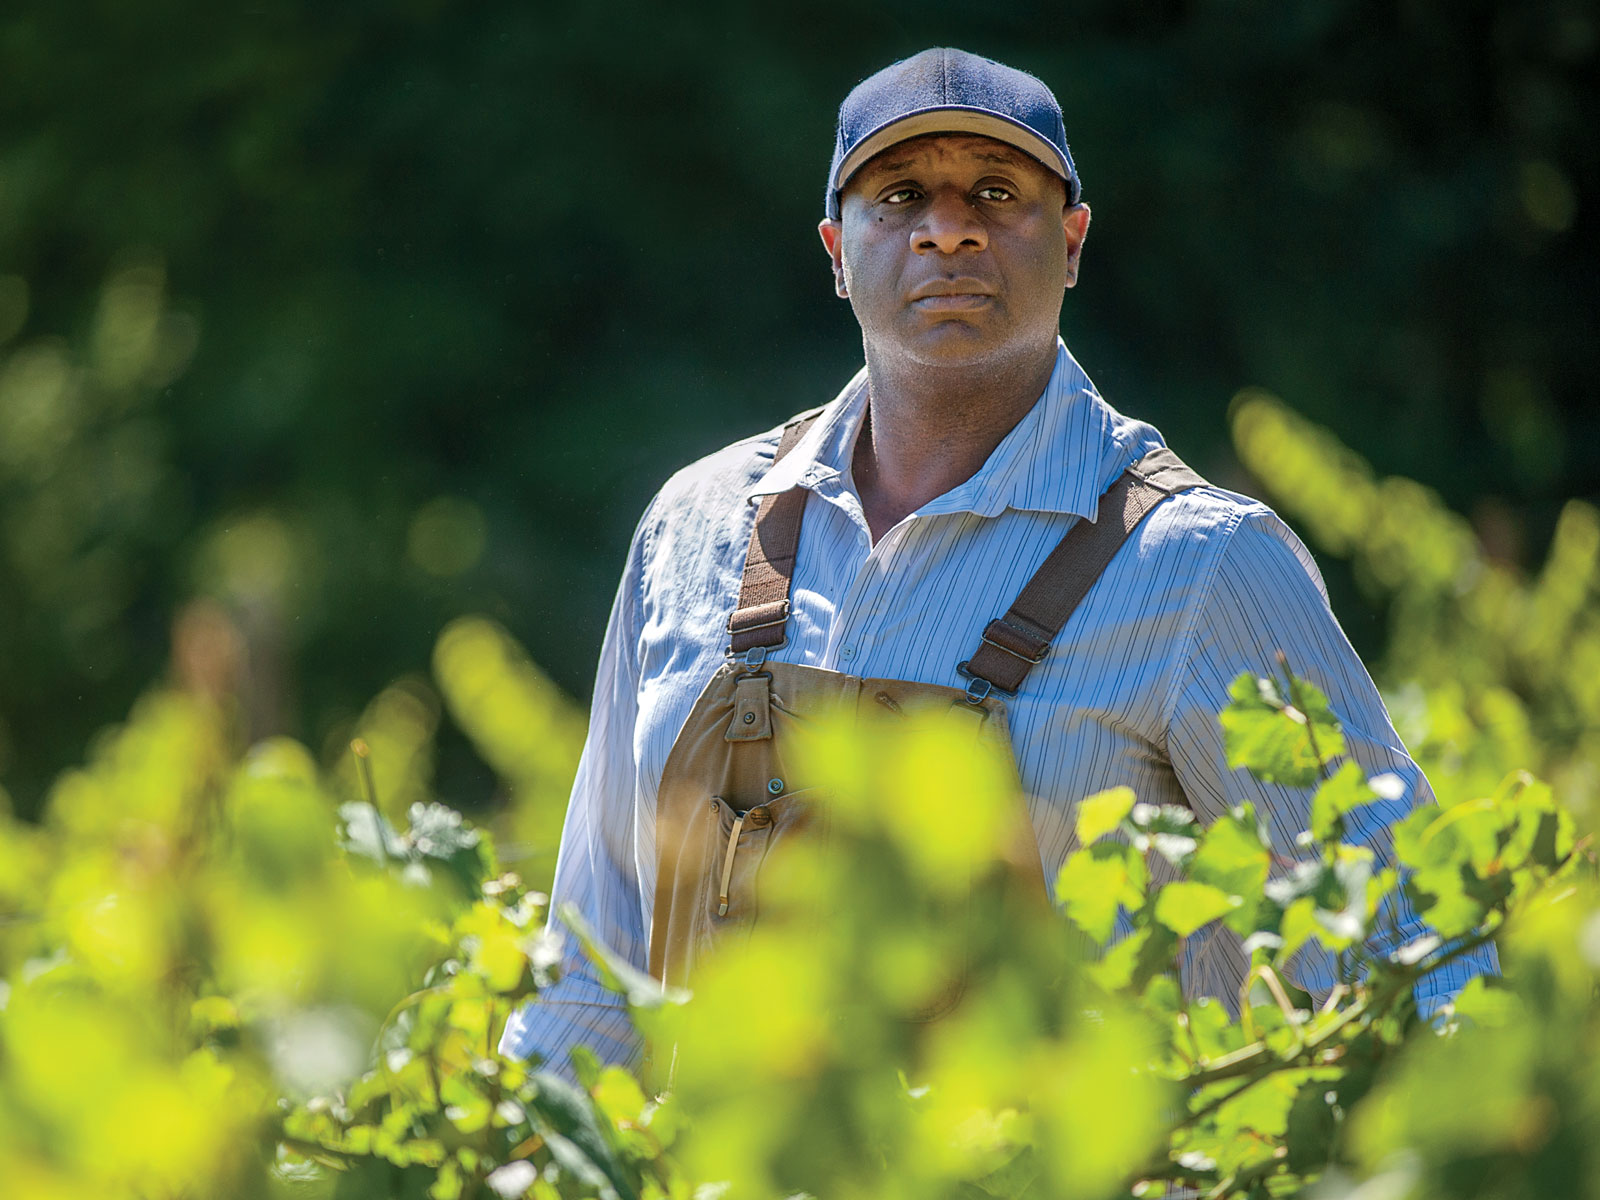 Bertony Faustin, the First Recorded Black Winemaker in Oregon, on Looking Forward